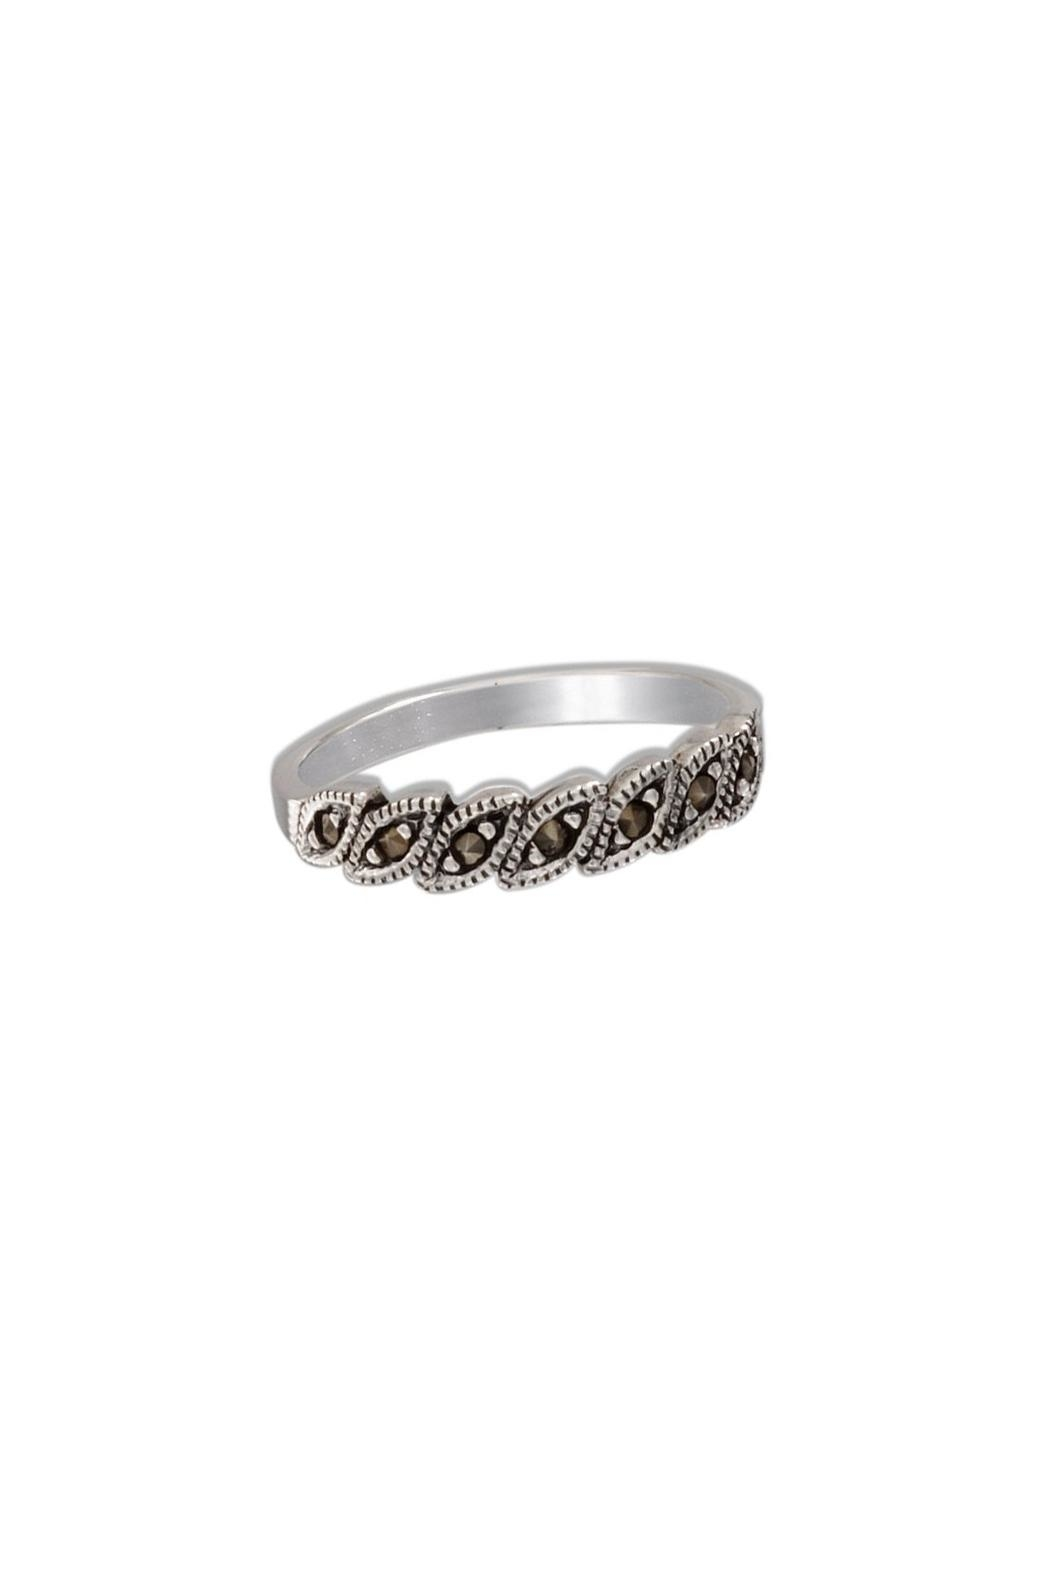 Wild Lilies Jewelry  Marquise Marcasite Ring - Main Image